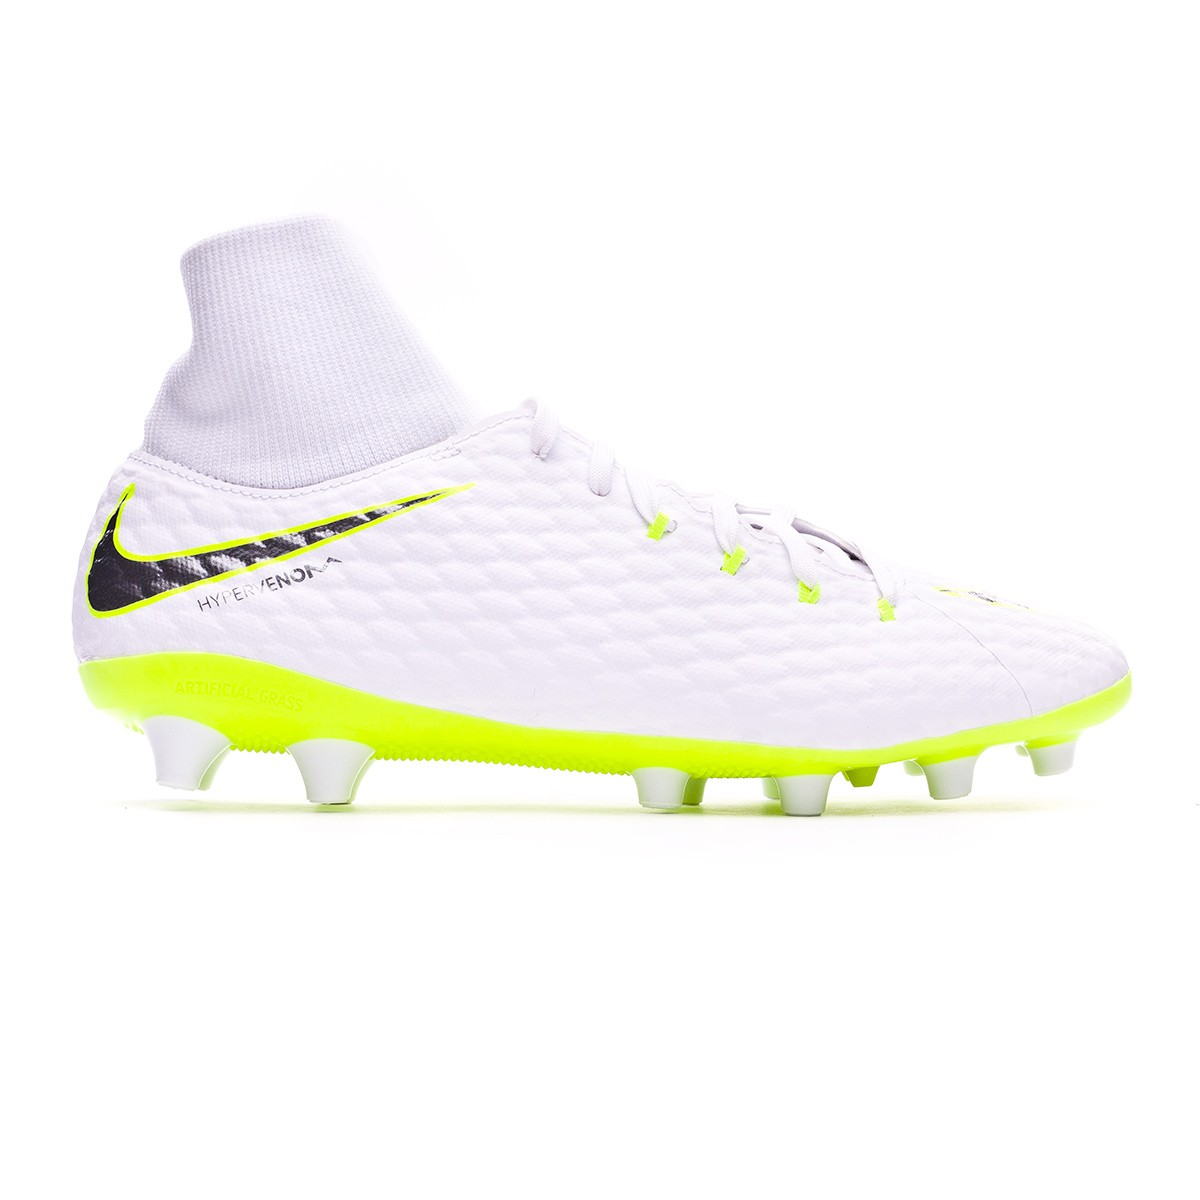 ca7aa2343c4 Football Boots Nike Hypervenom Phantom III Academy DF AG-Pro White-Metallic  cool grey-Volt-Metallic cool g - Football store Fútbol Emotion